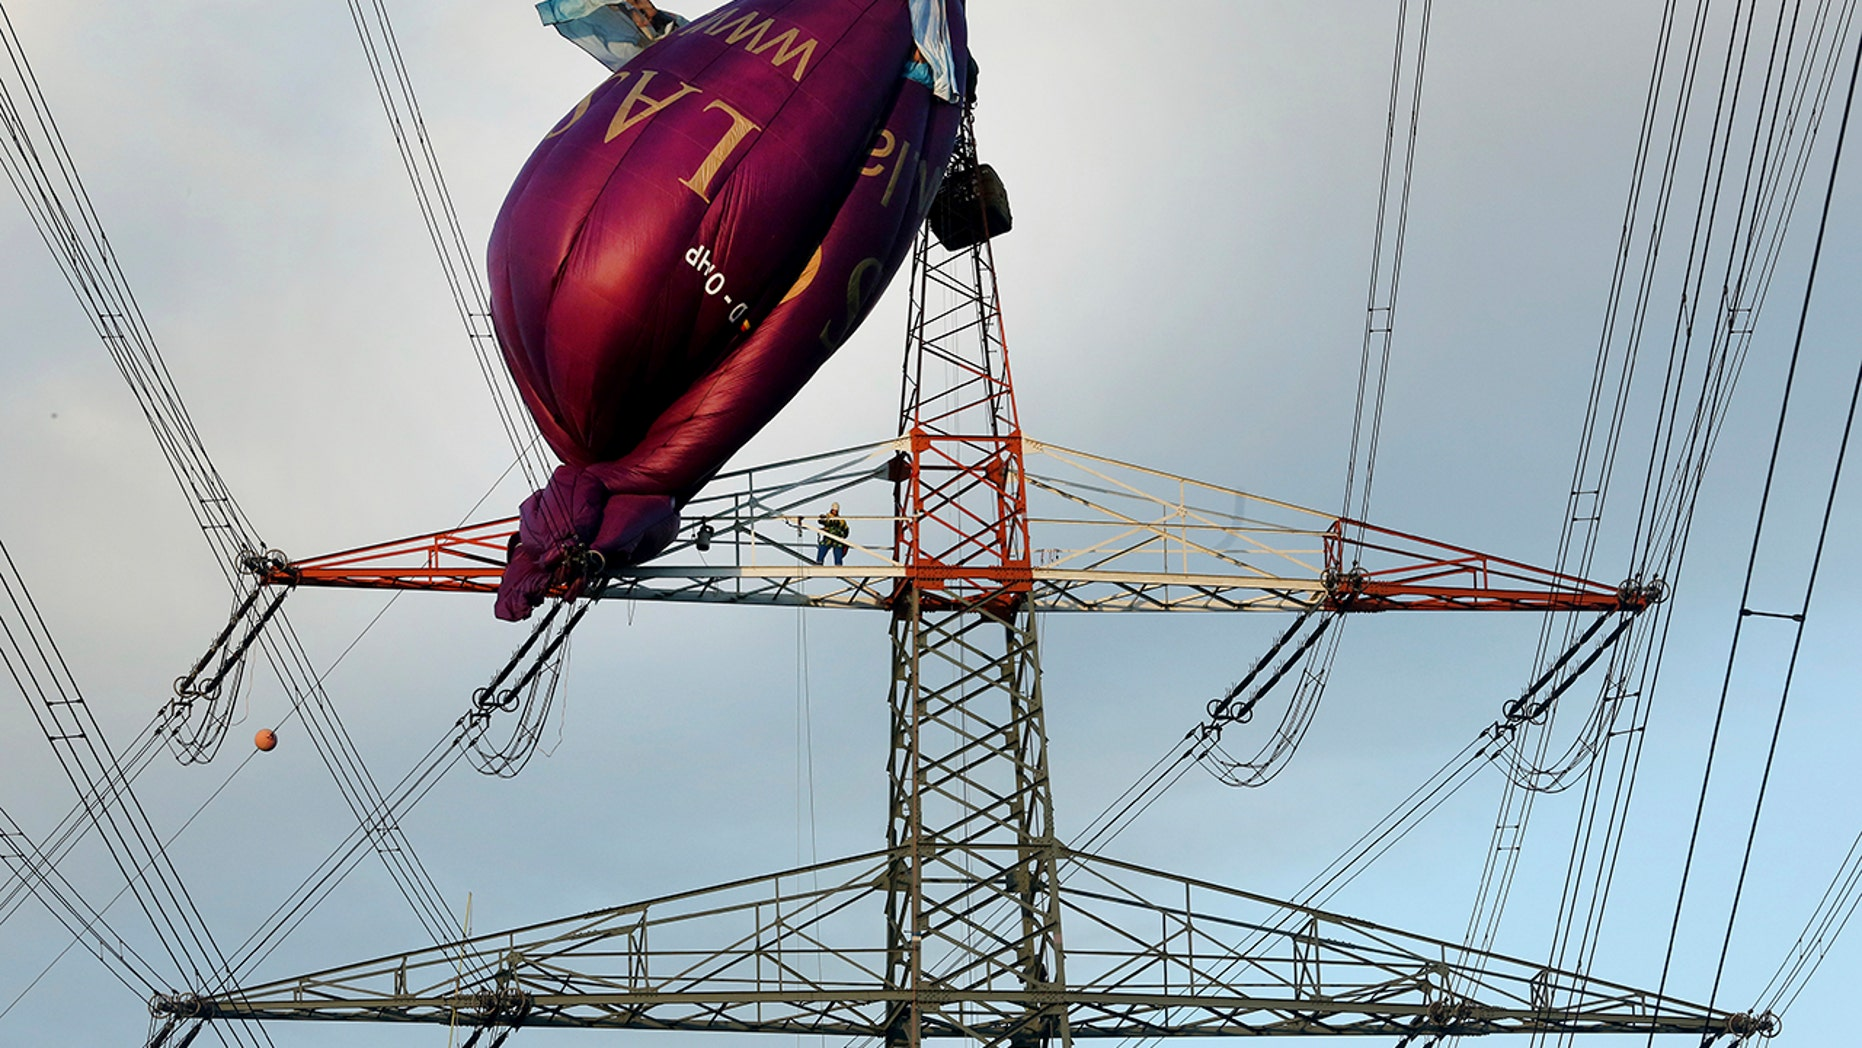 Hot air balloon hits German power line tower, prompting dramatic ...